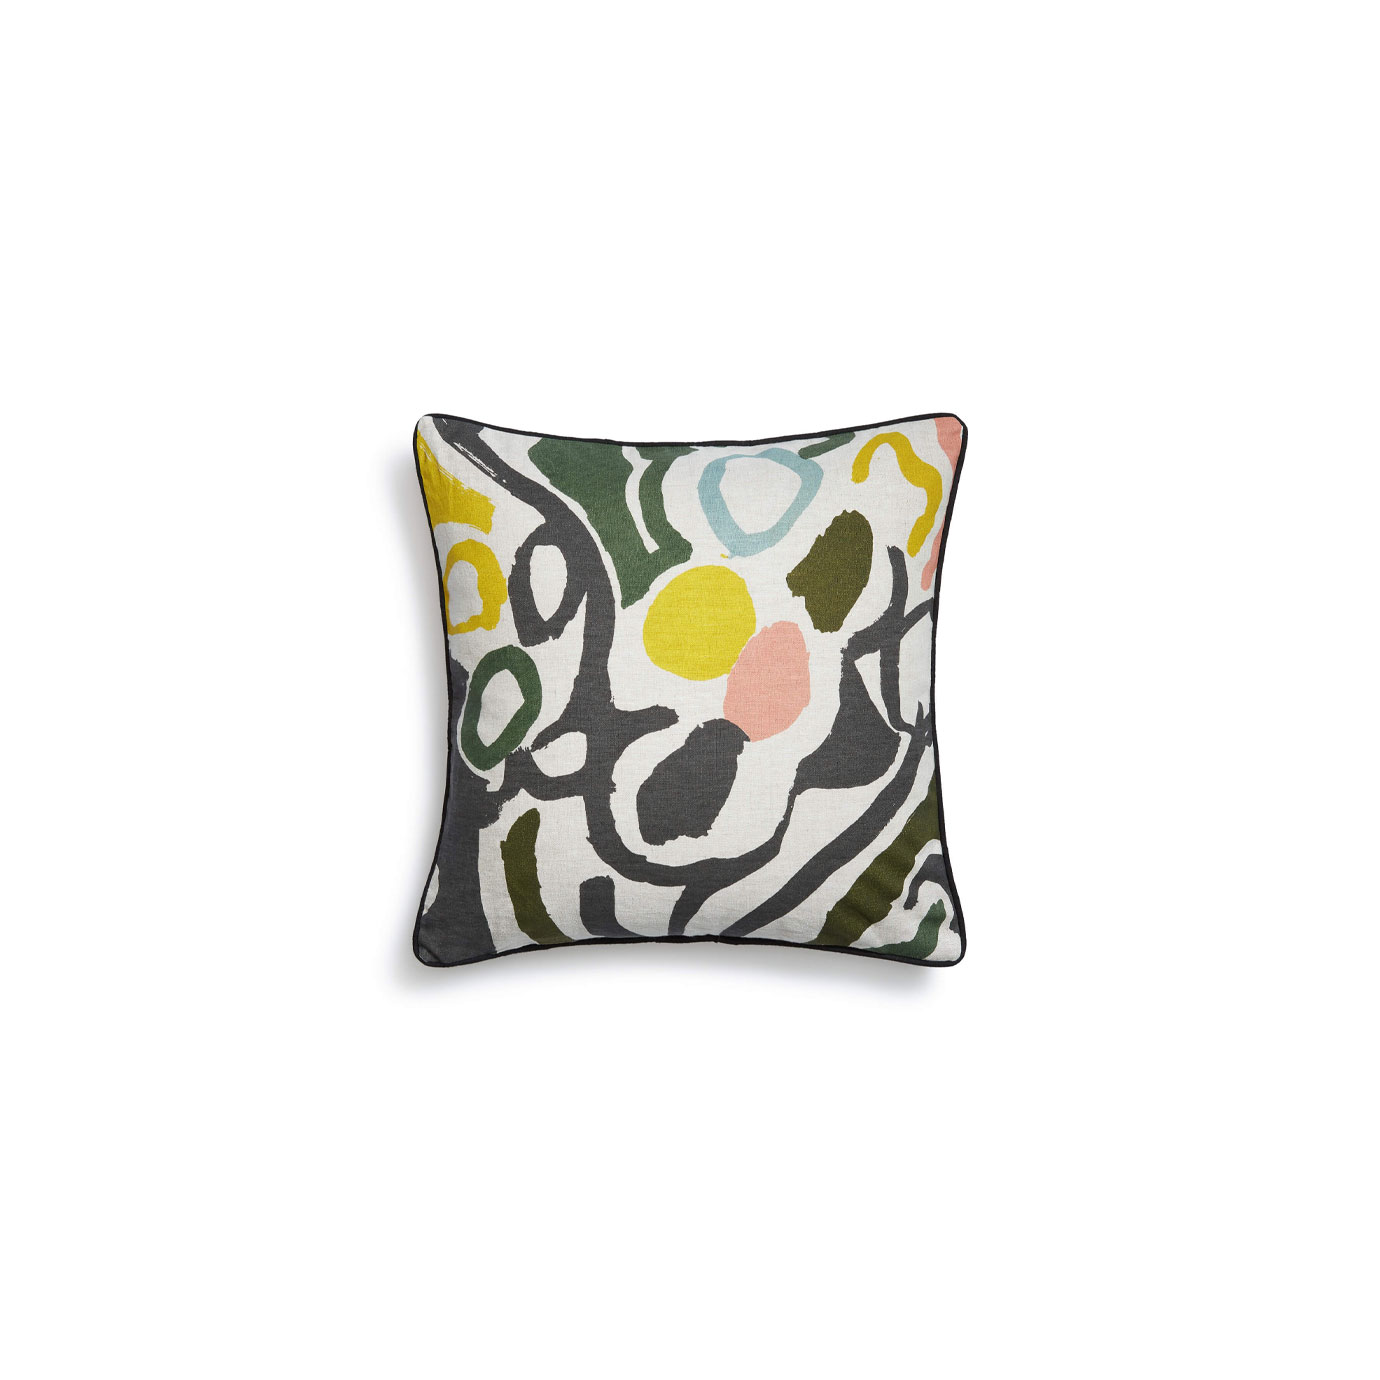 A cushion with a multi-coloured abstract pattern on it.